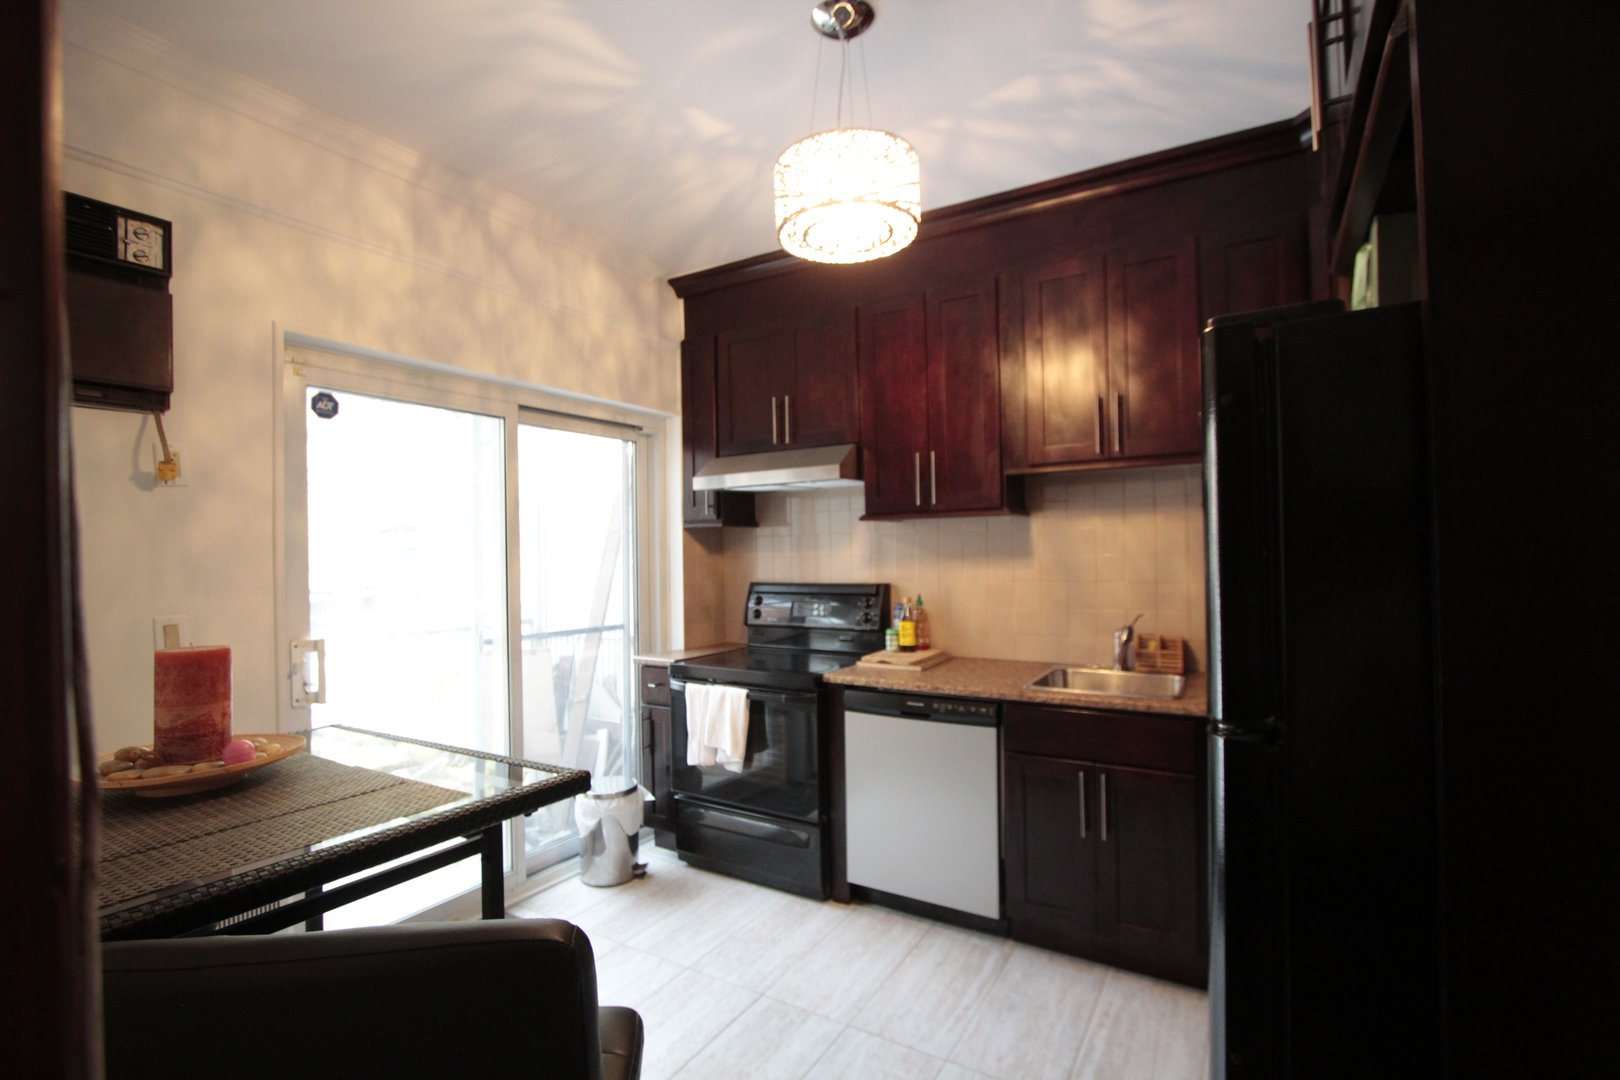 Apartment for rent at 4649 Avenue Clanranald, Montréal, QC. This is the kitchen with natural light, stainless steel and hardwood floor.